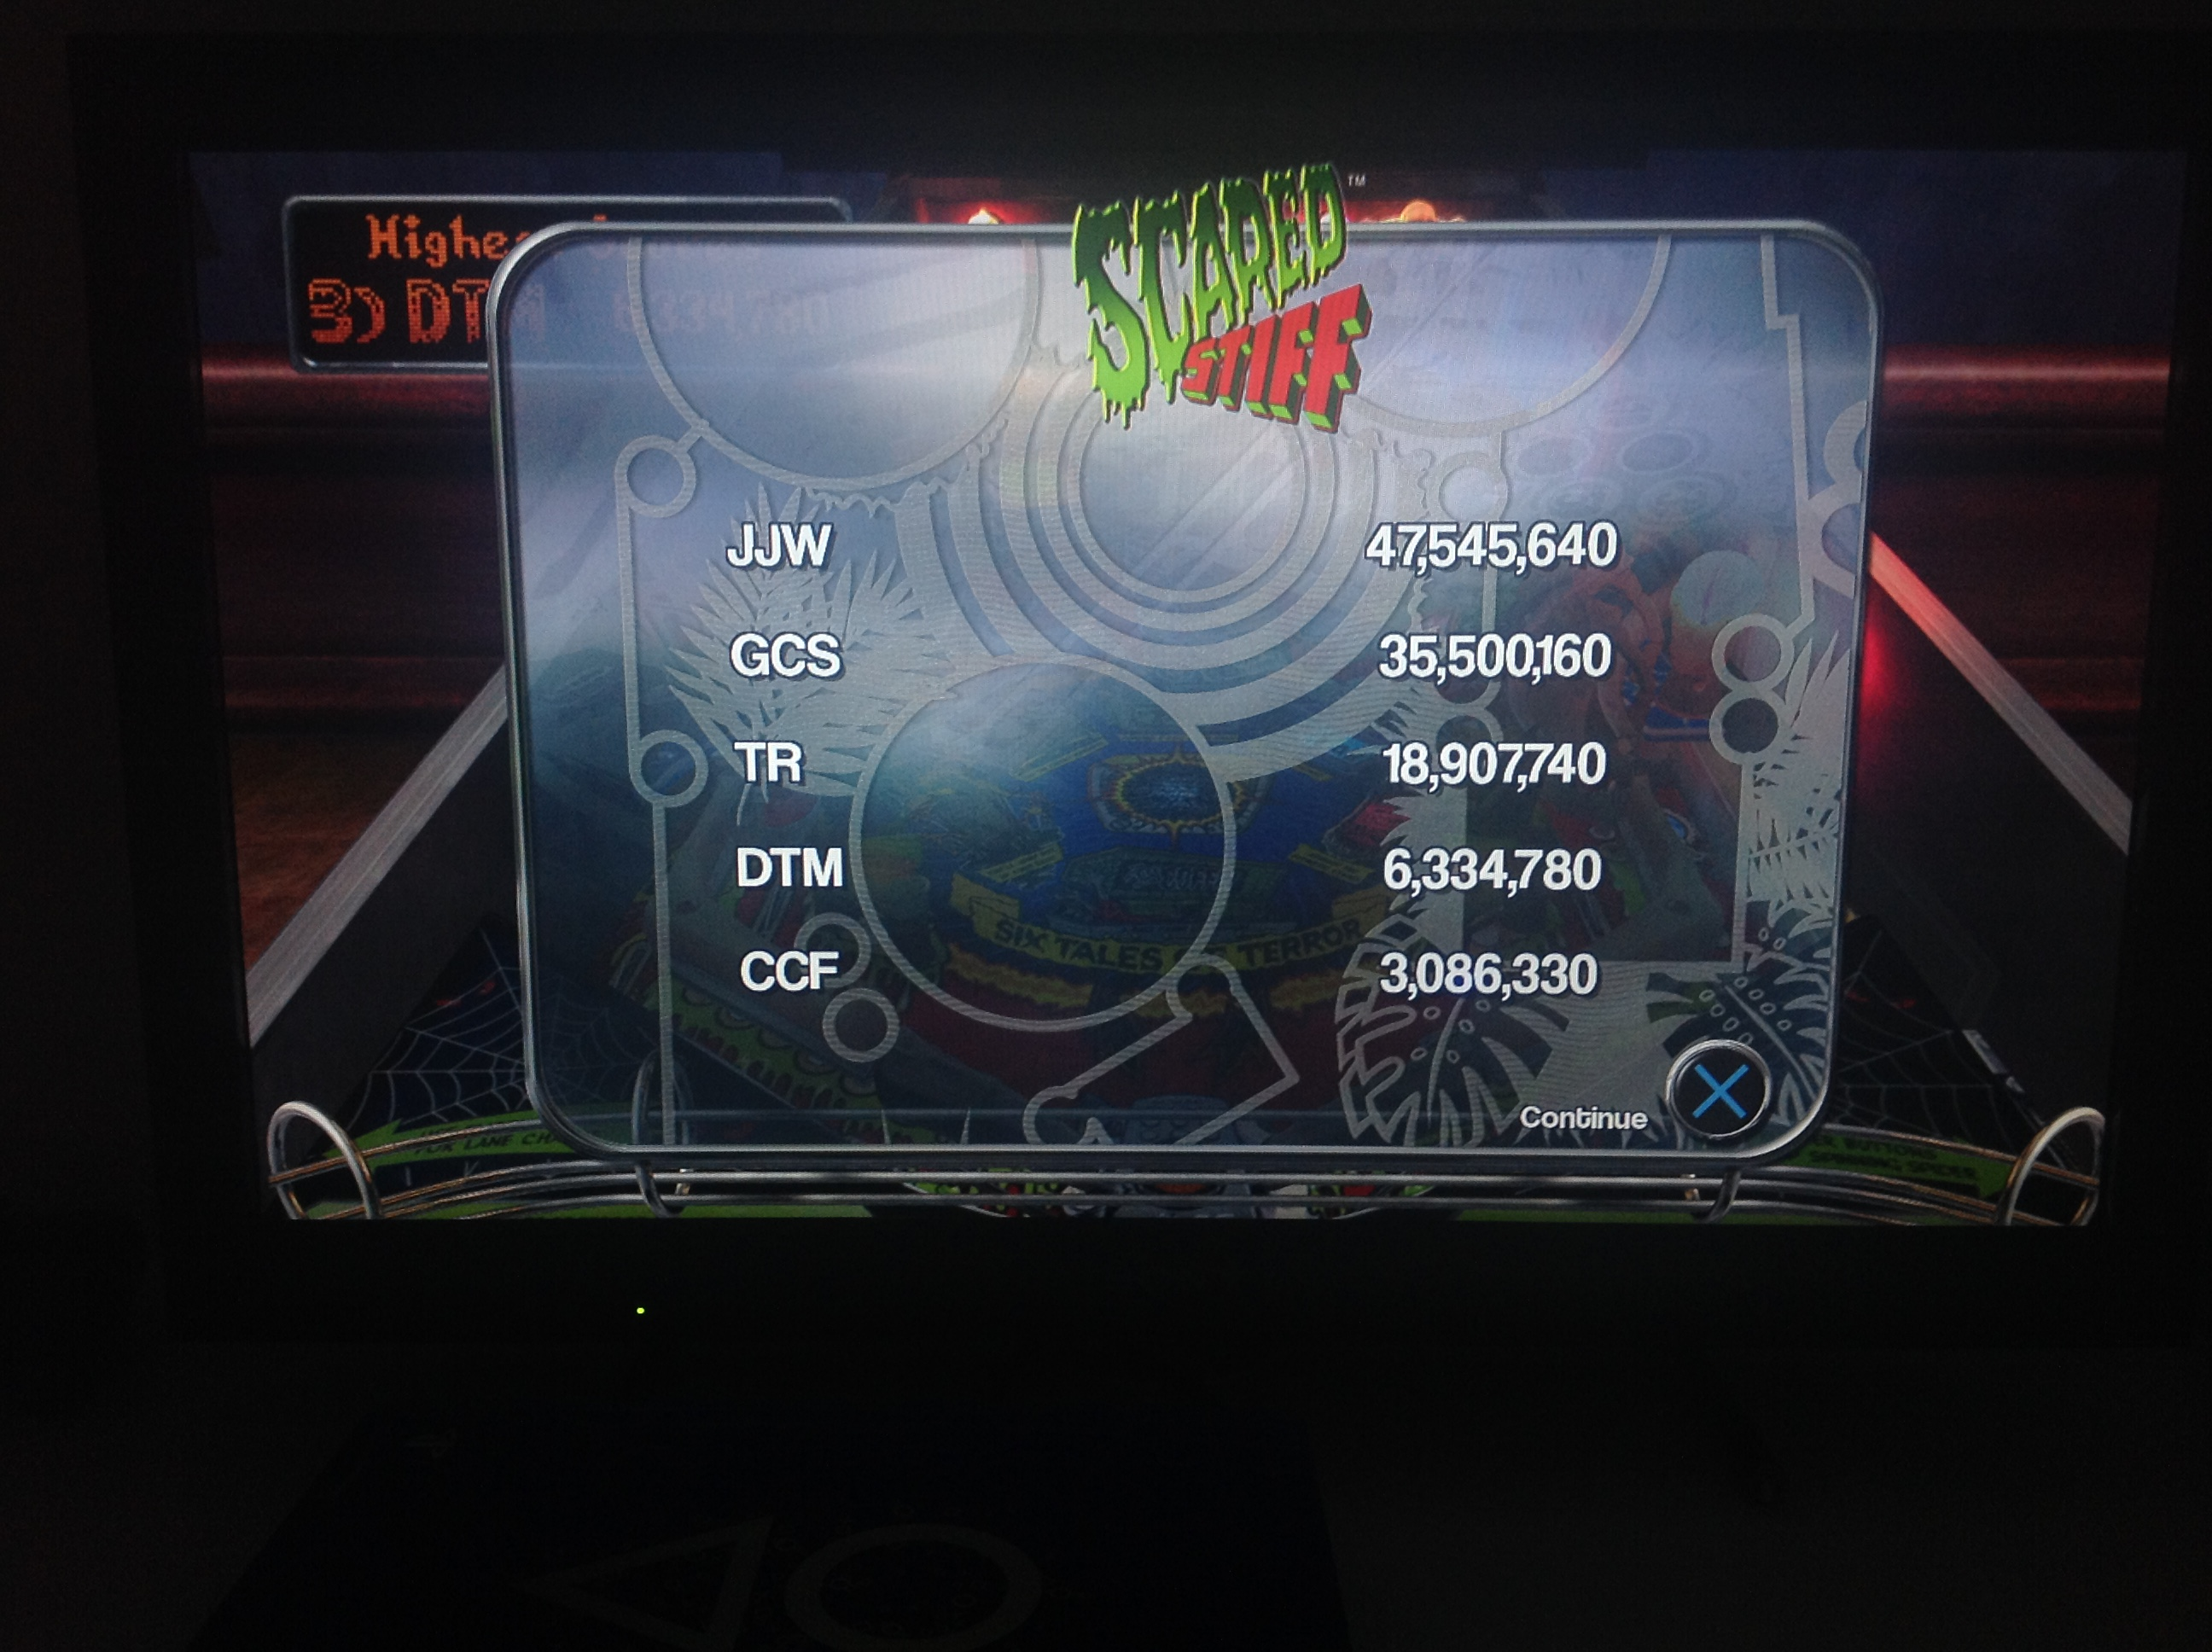 CoCoForest: Pinball Arcade: Scared Stiff (Playstation 4) 3,086,330 points on 2018-07-06 14:52:18